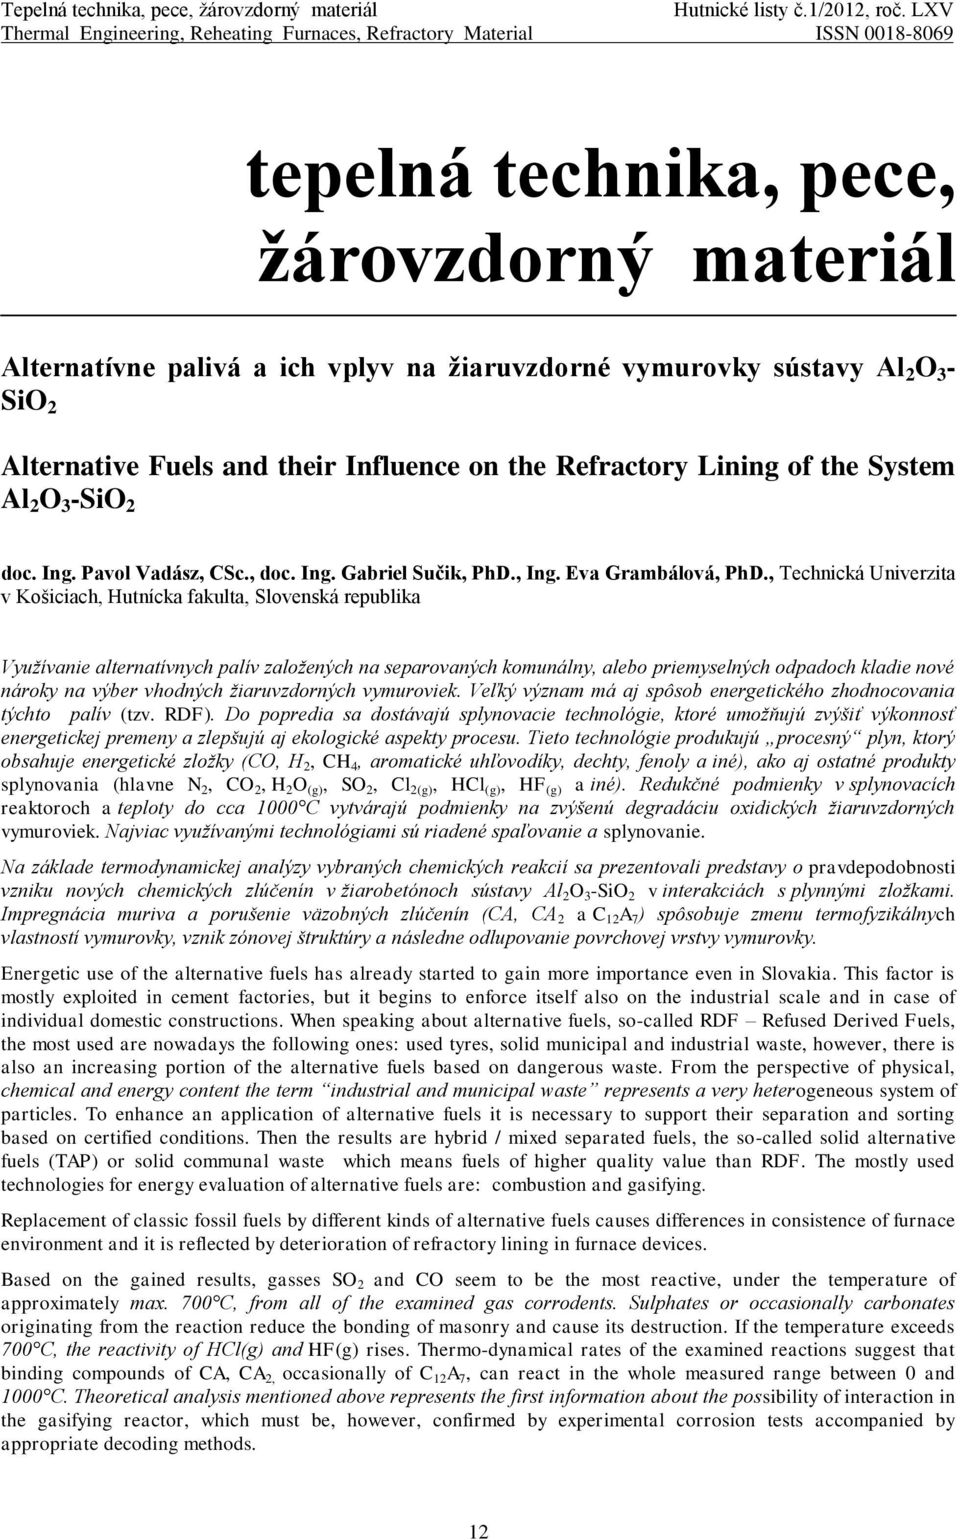 - SiO 2 Alternative Fuels and their Influence on the Refractory Lining of the System Al 2 O 3 -SiO 2 doc. Ing. Pavol Vadász, CSc., doc. Ing. Gabriel Sučik, PhD., Ing. Eva Grambálová, PhD.